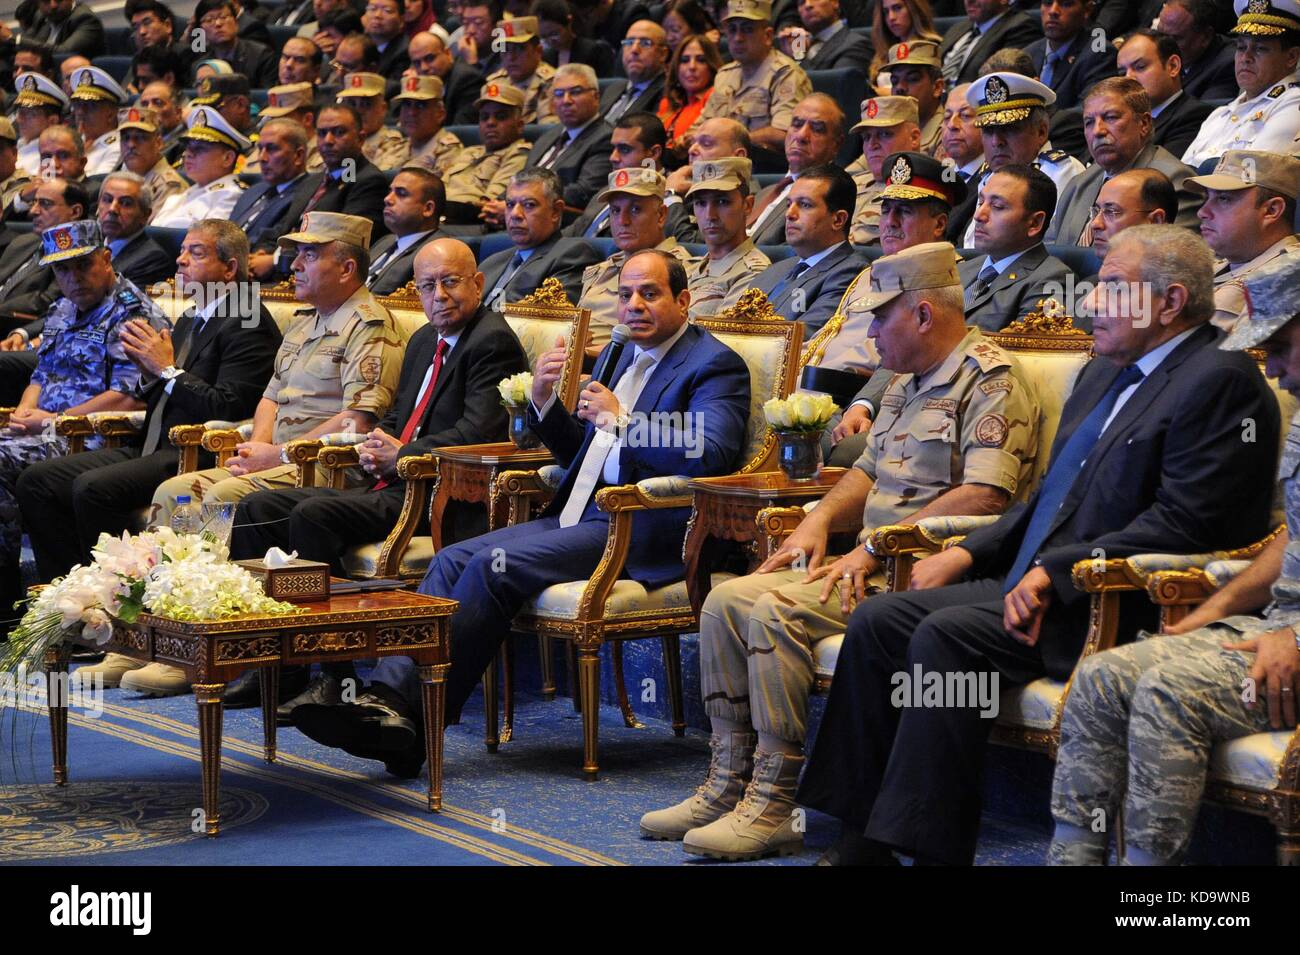 Cairo, Egypt. 12th Oct, 2017. Egyptian President Abdel-Fattah al-Sisi (C, Front) speaks during a deal signing ceremony - Stock Image